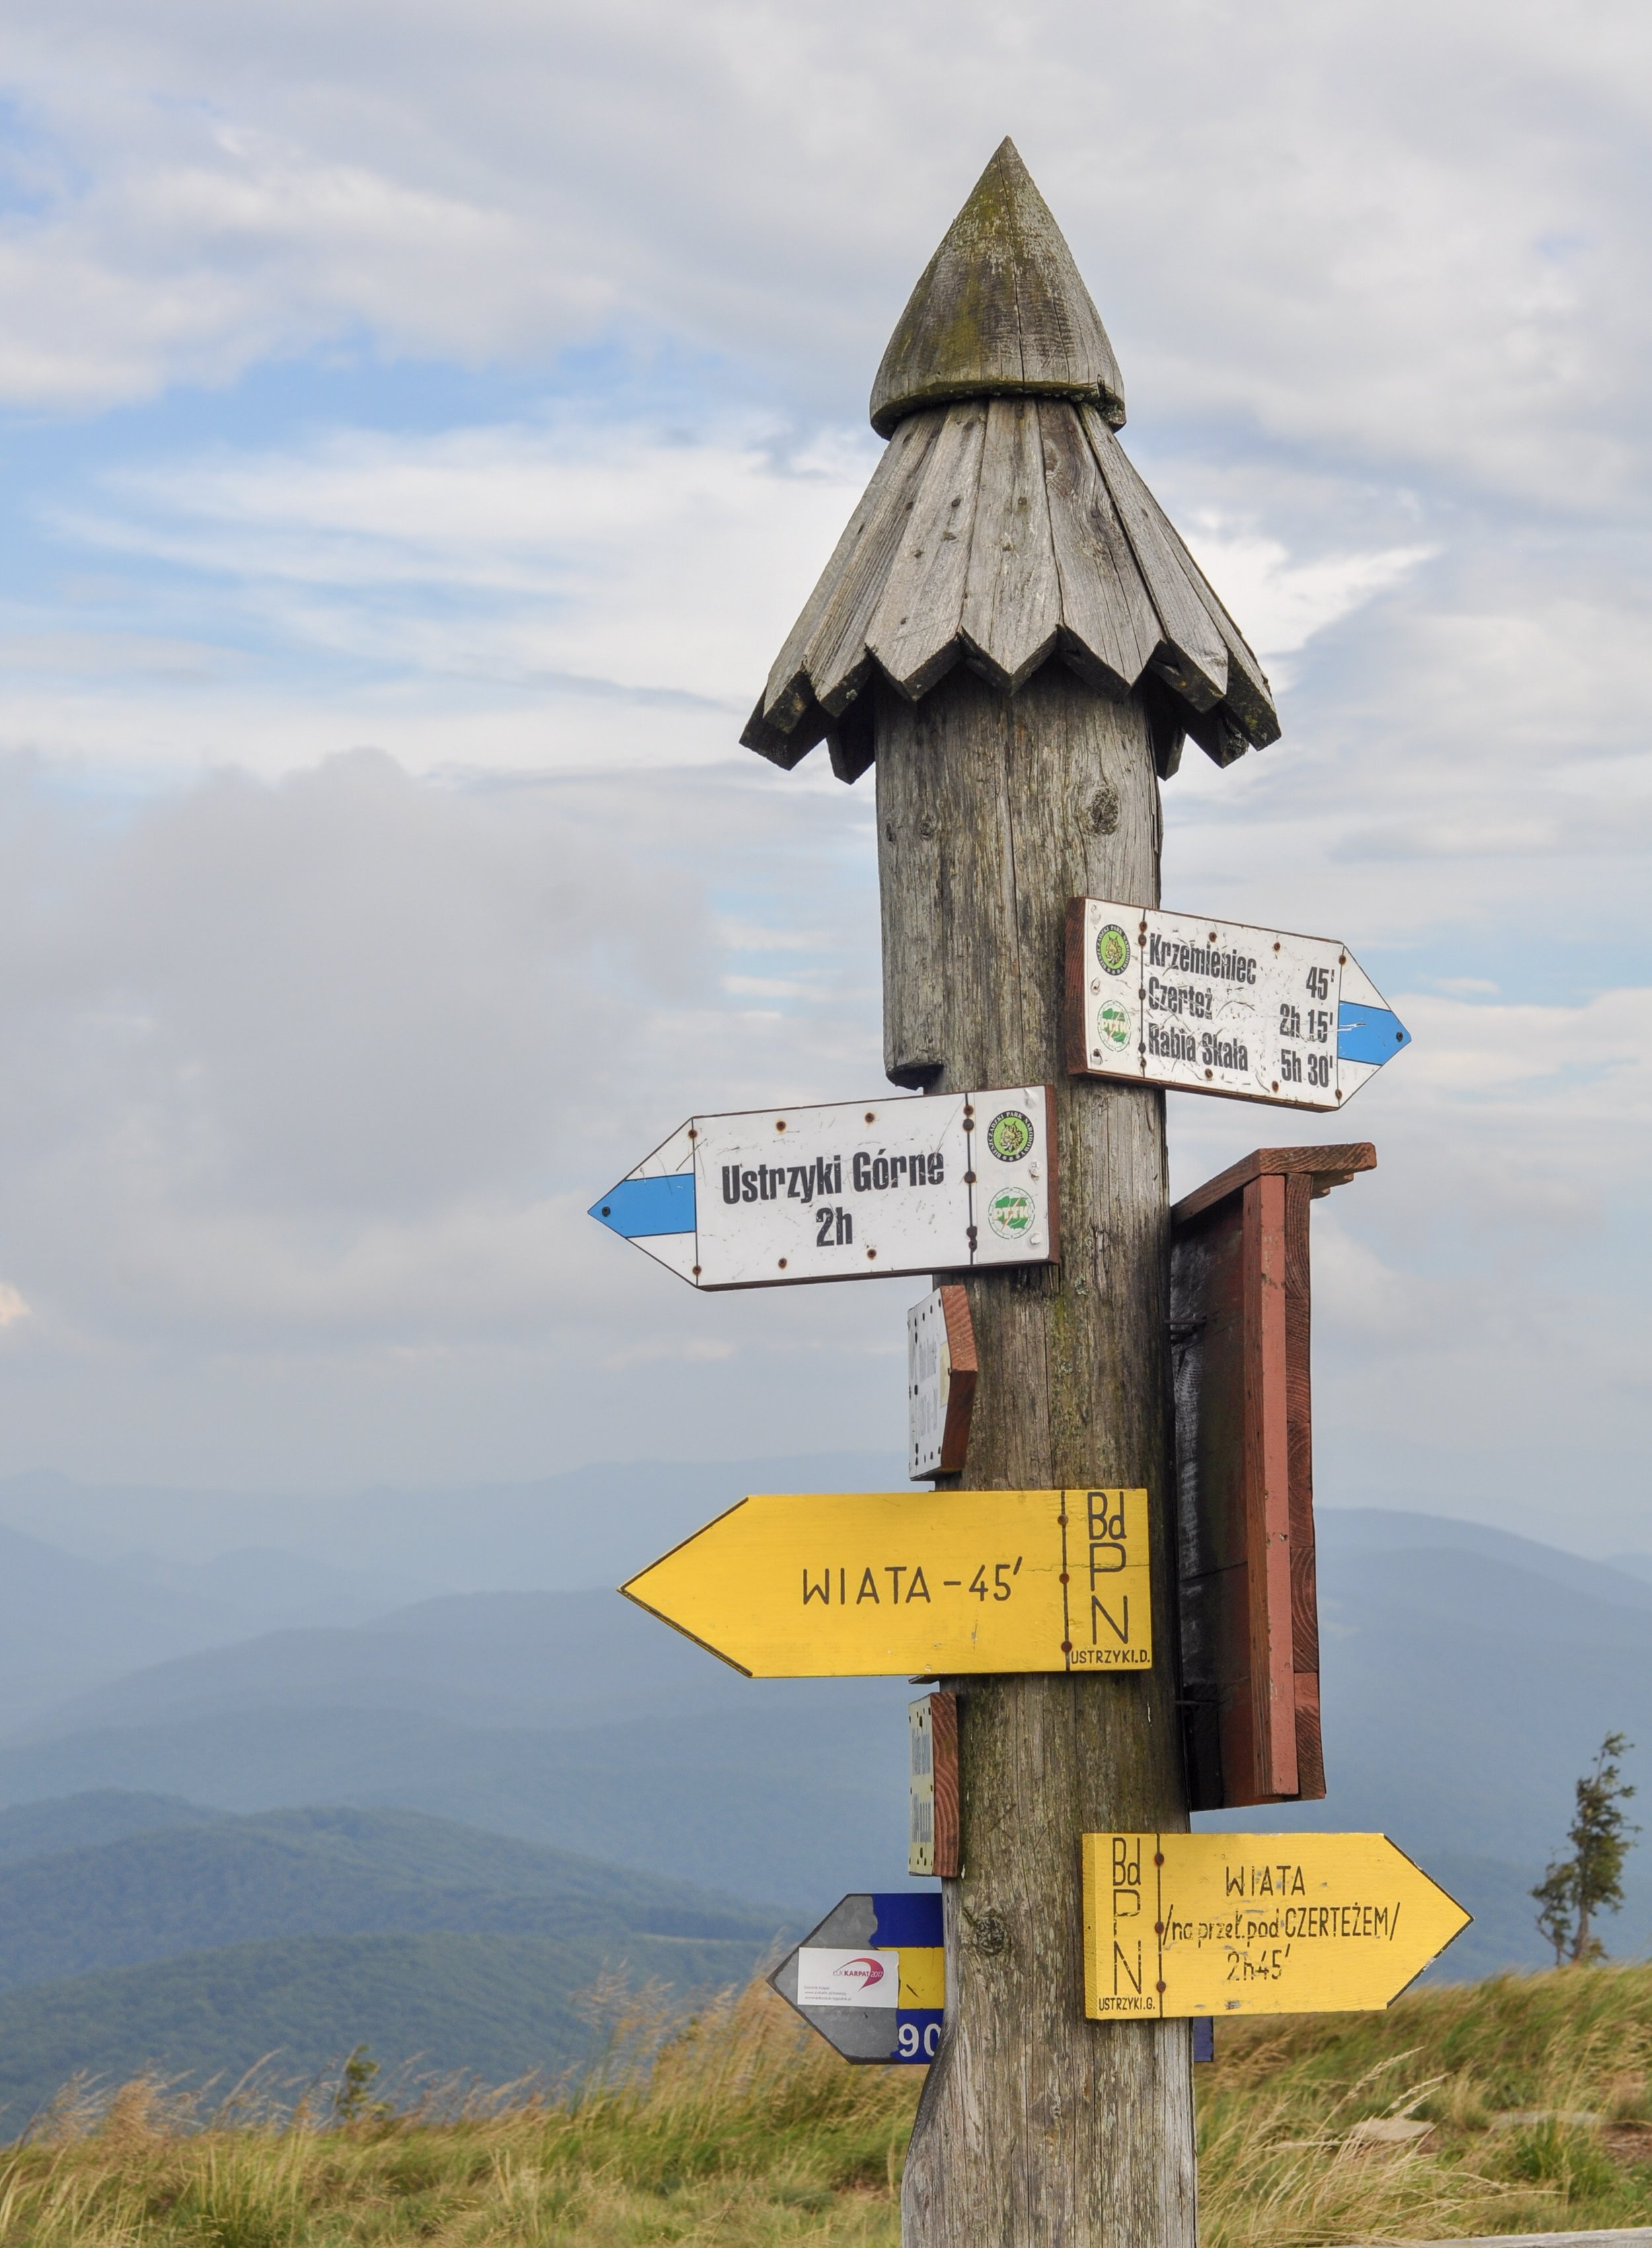 Signpost with arrows pointing out the various trails on the Tri-Border hike in the Bieszcady Mountains